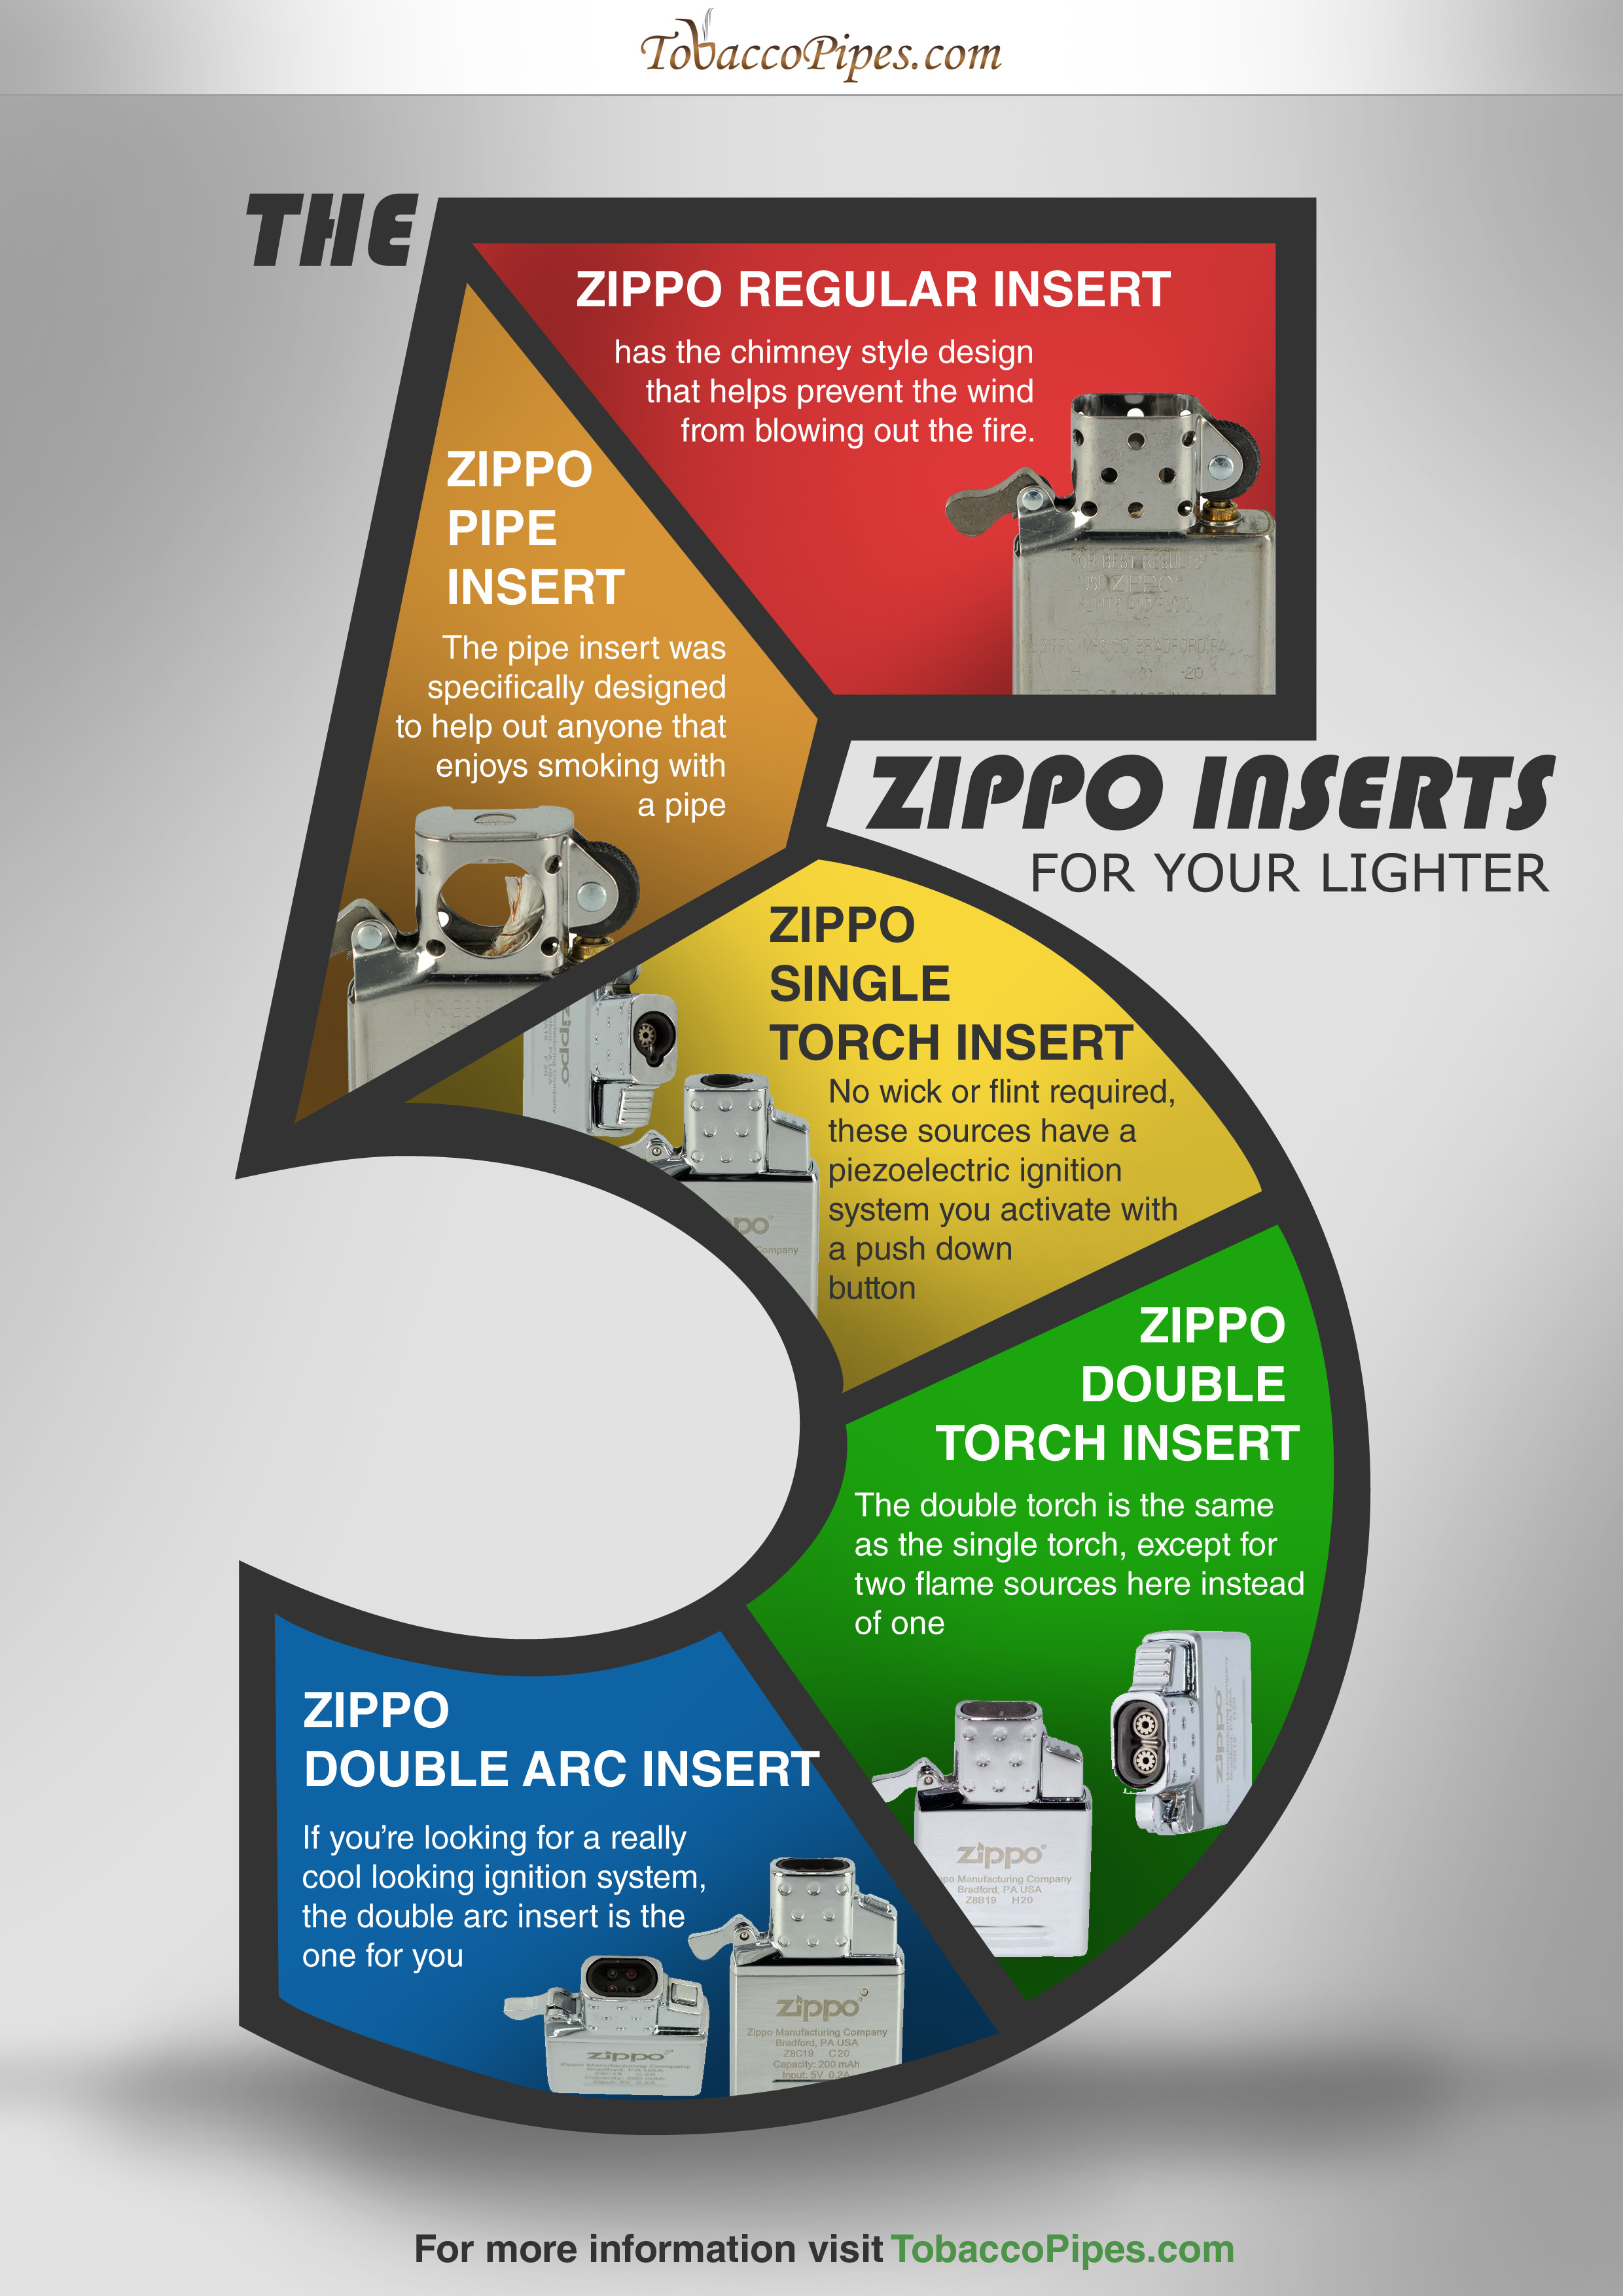 The Five Zippo Inserts for Your Lighter Infograph